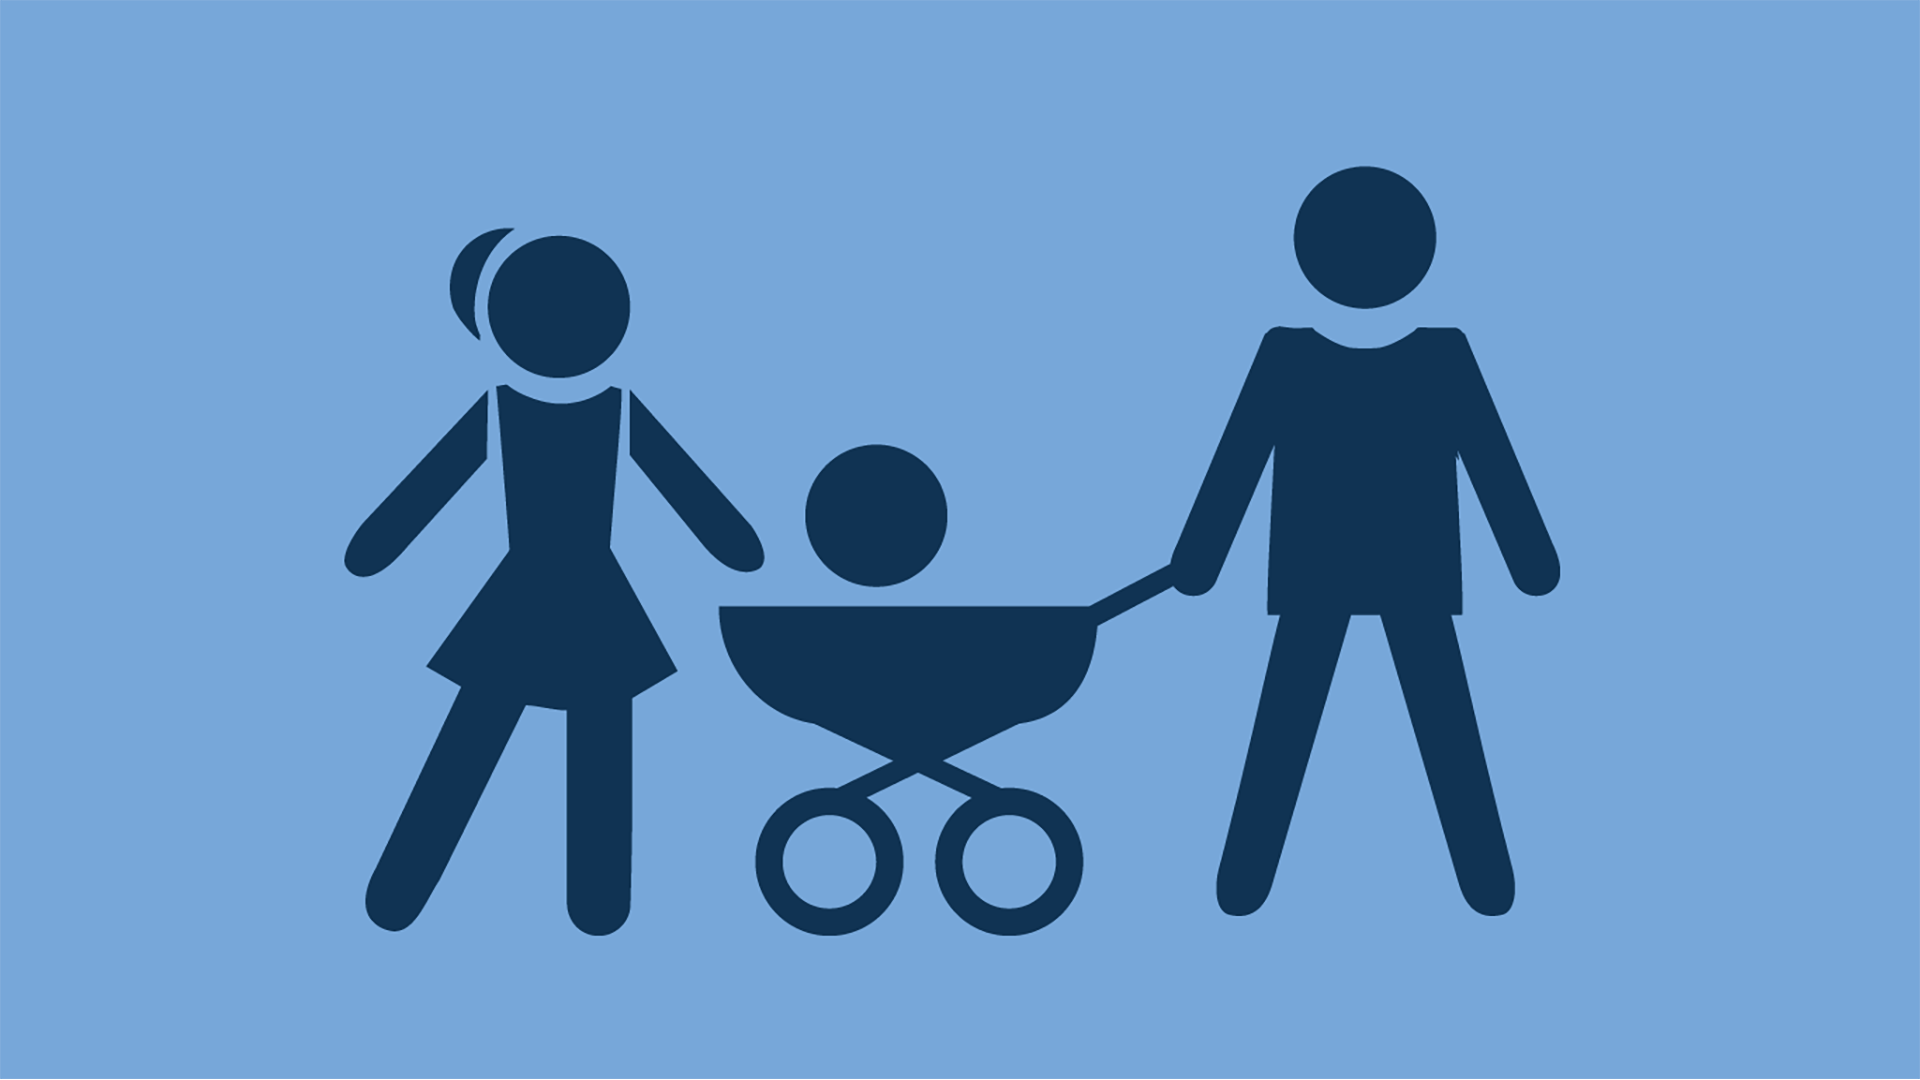 Icon of light blue figure family with a baby carriage symbol.